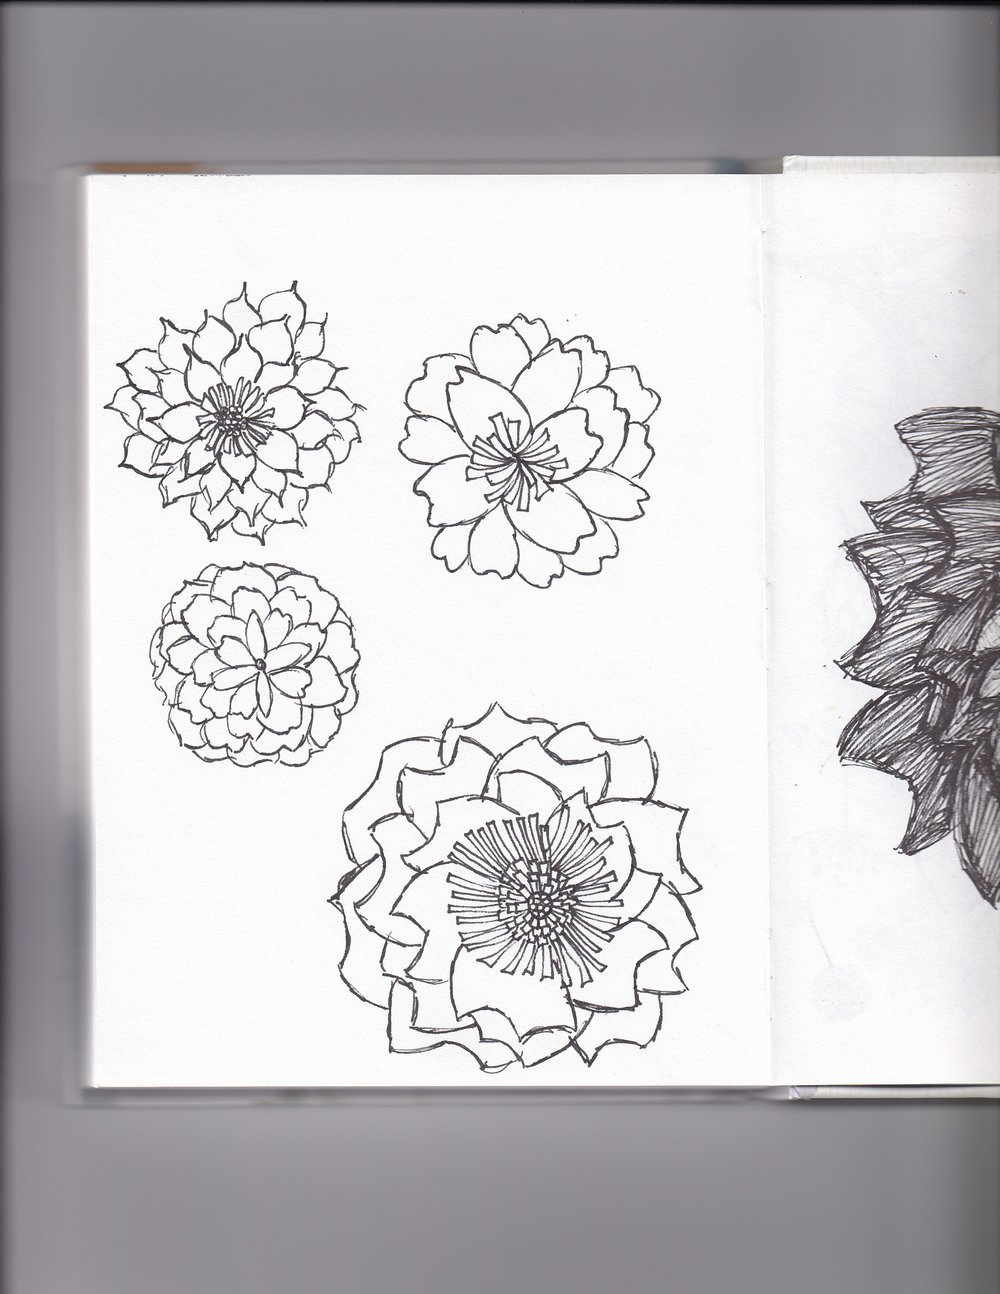 Sketches: - I started off by creating a few sketches that added that handmade unique feel to the logo. I then scanned them onto my computer and worked on them from there.